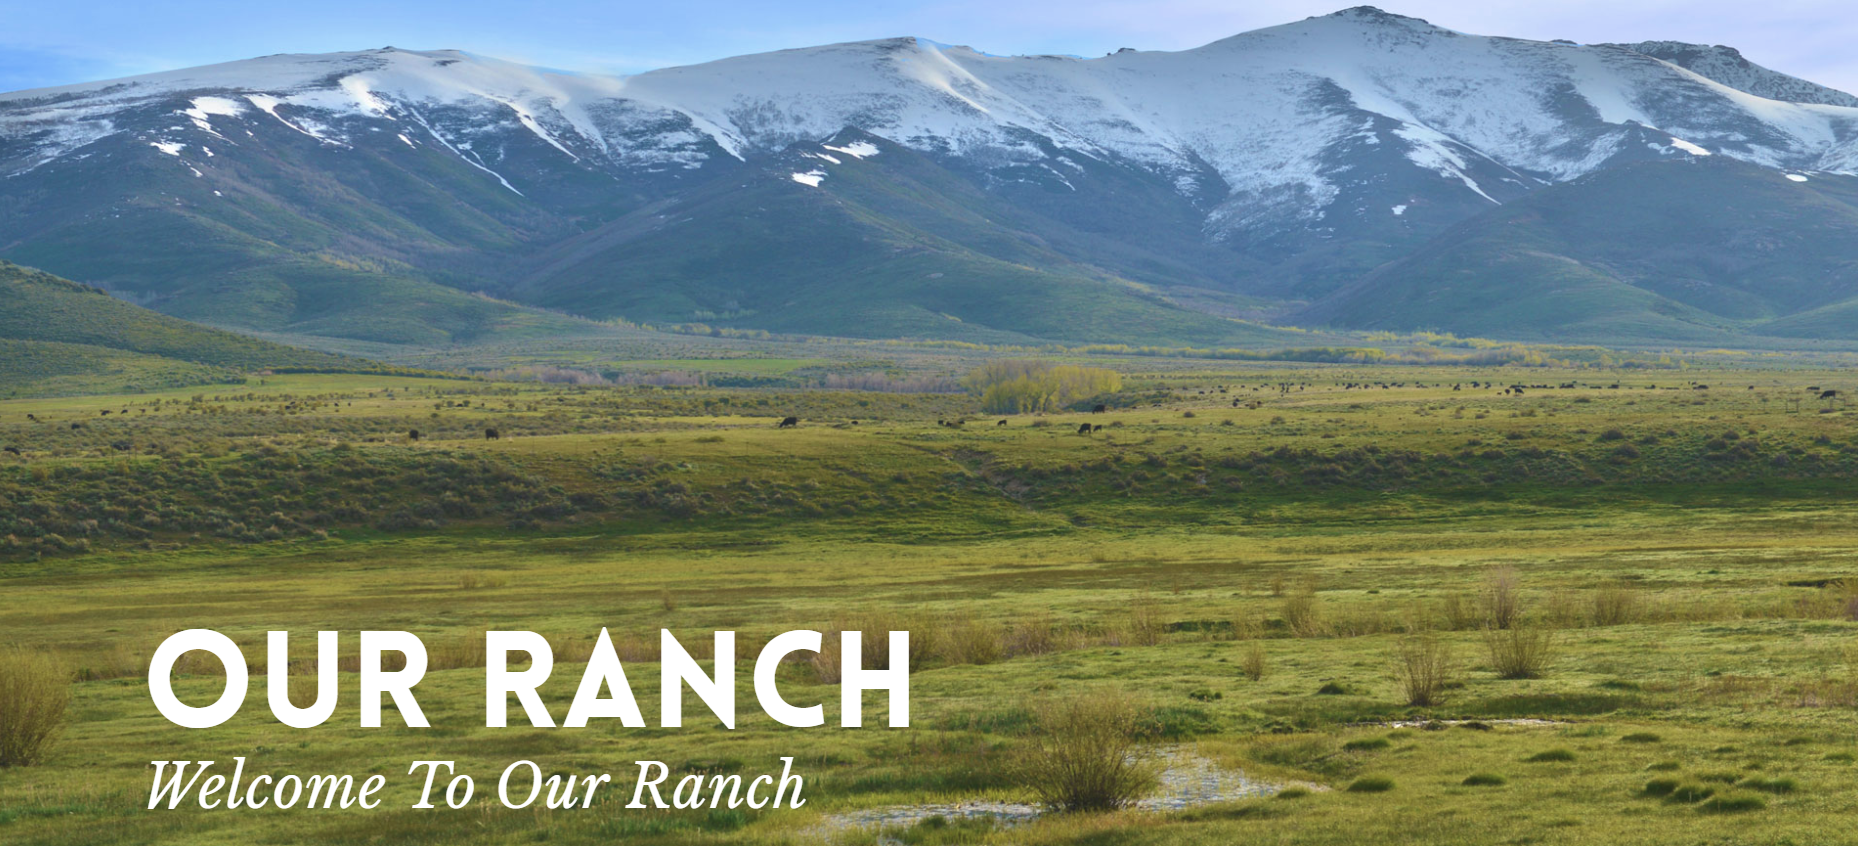 Our Ranch